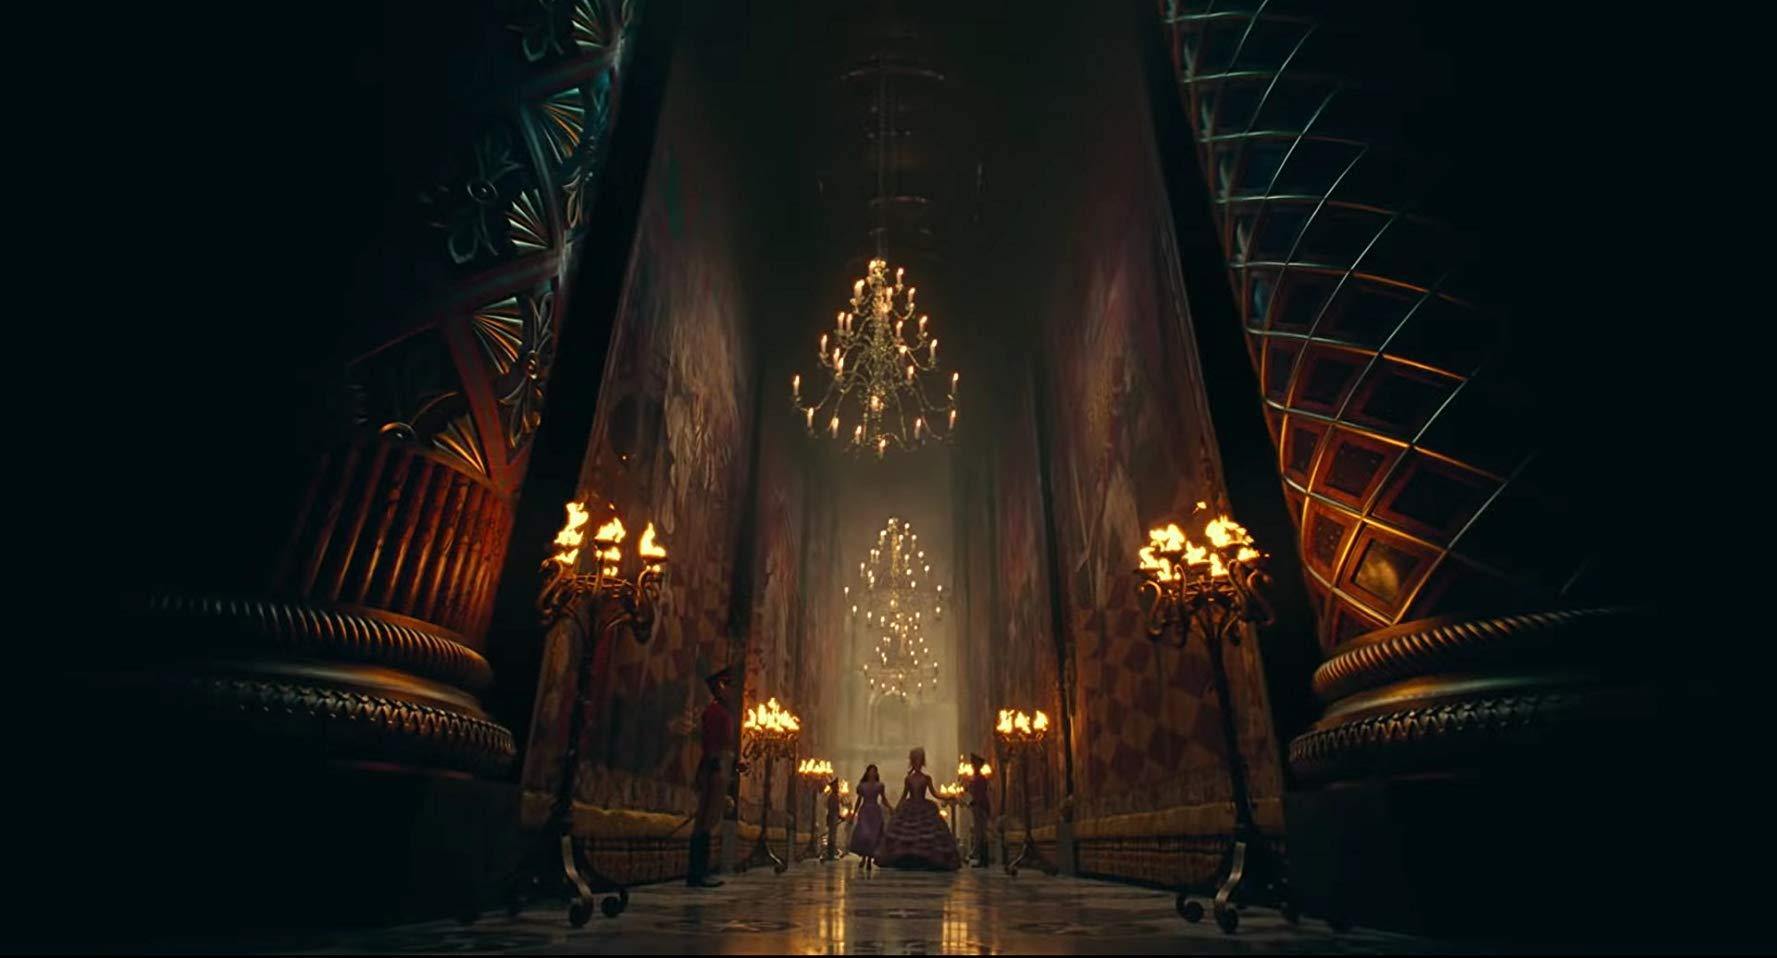 The hallways of the palace in The Nutcracker and the Four Realms (2018)